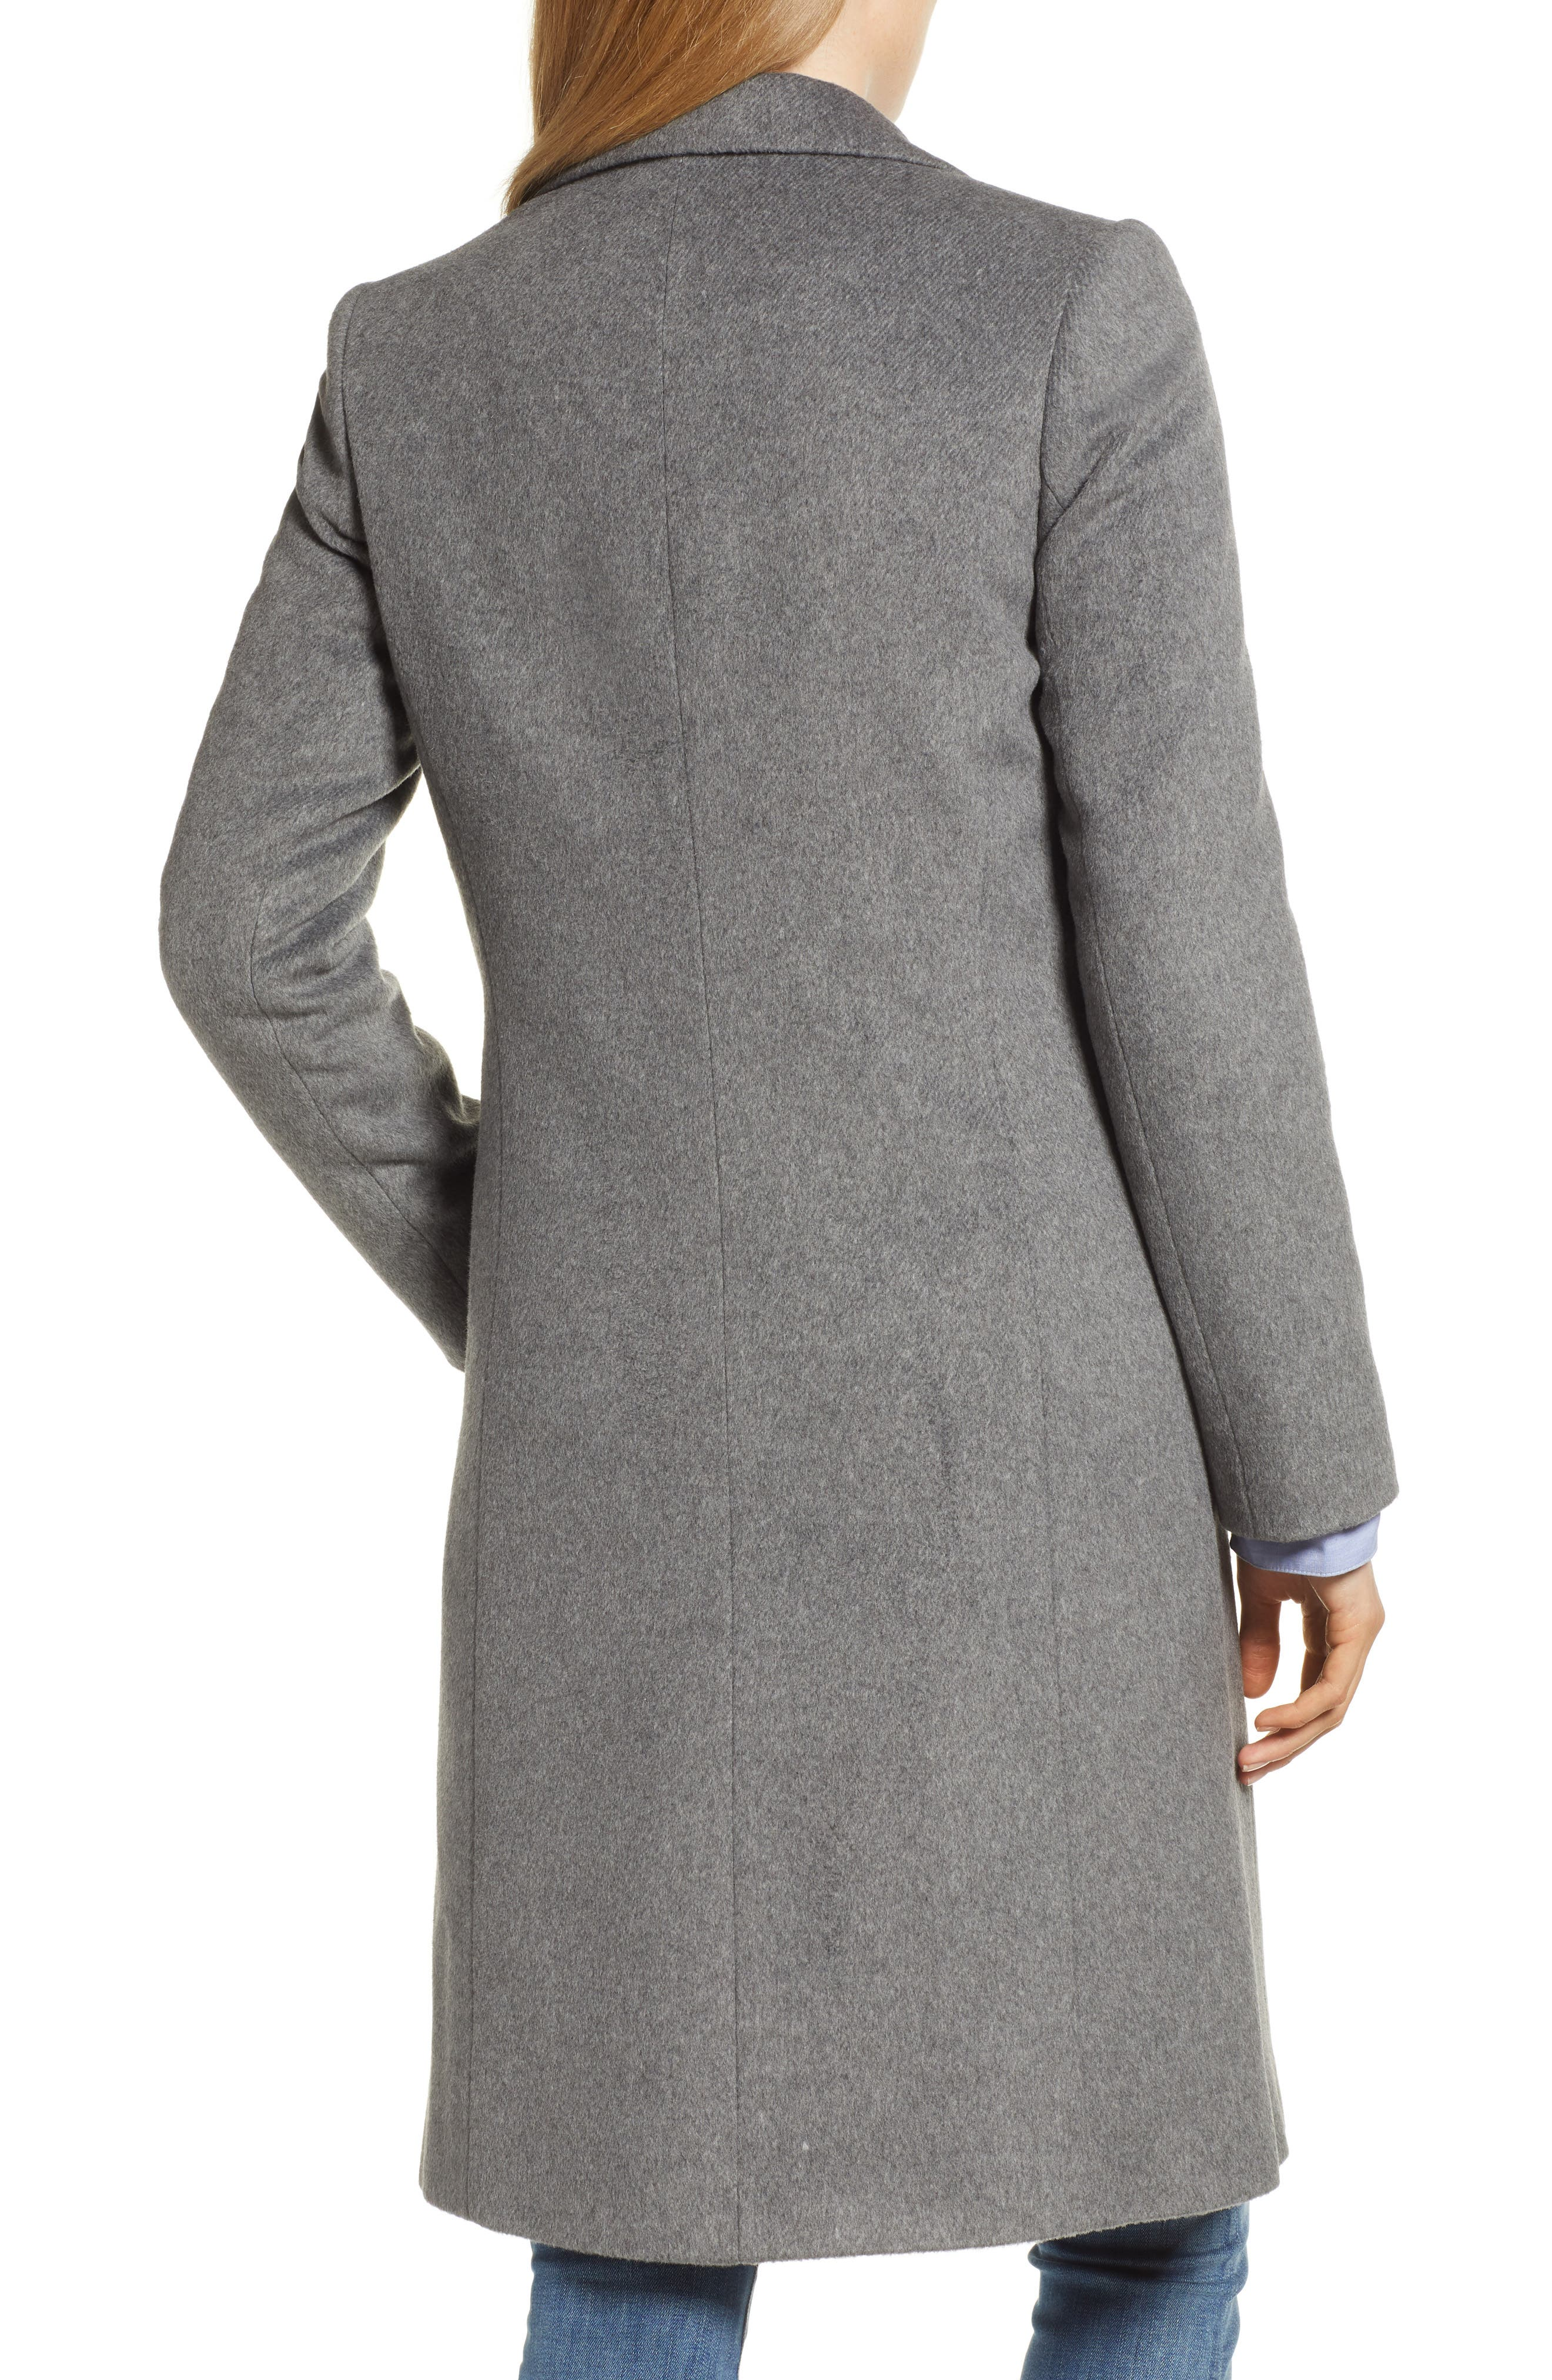 Charles Gray London College Coat,                             Alternate thumbnail 2, color,                             020